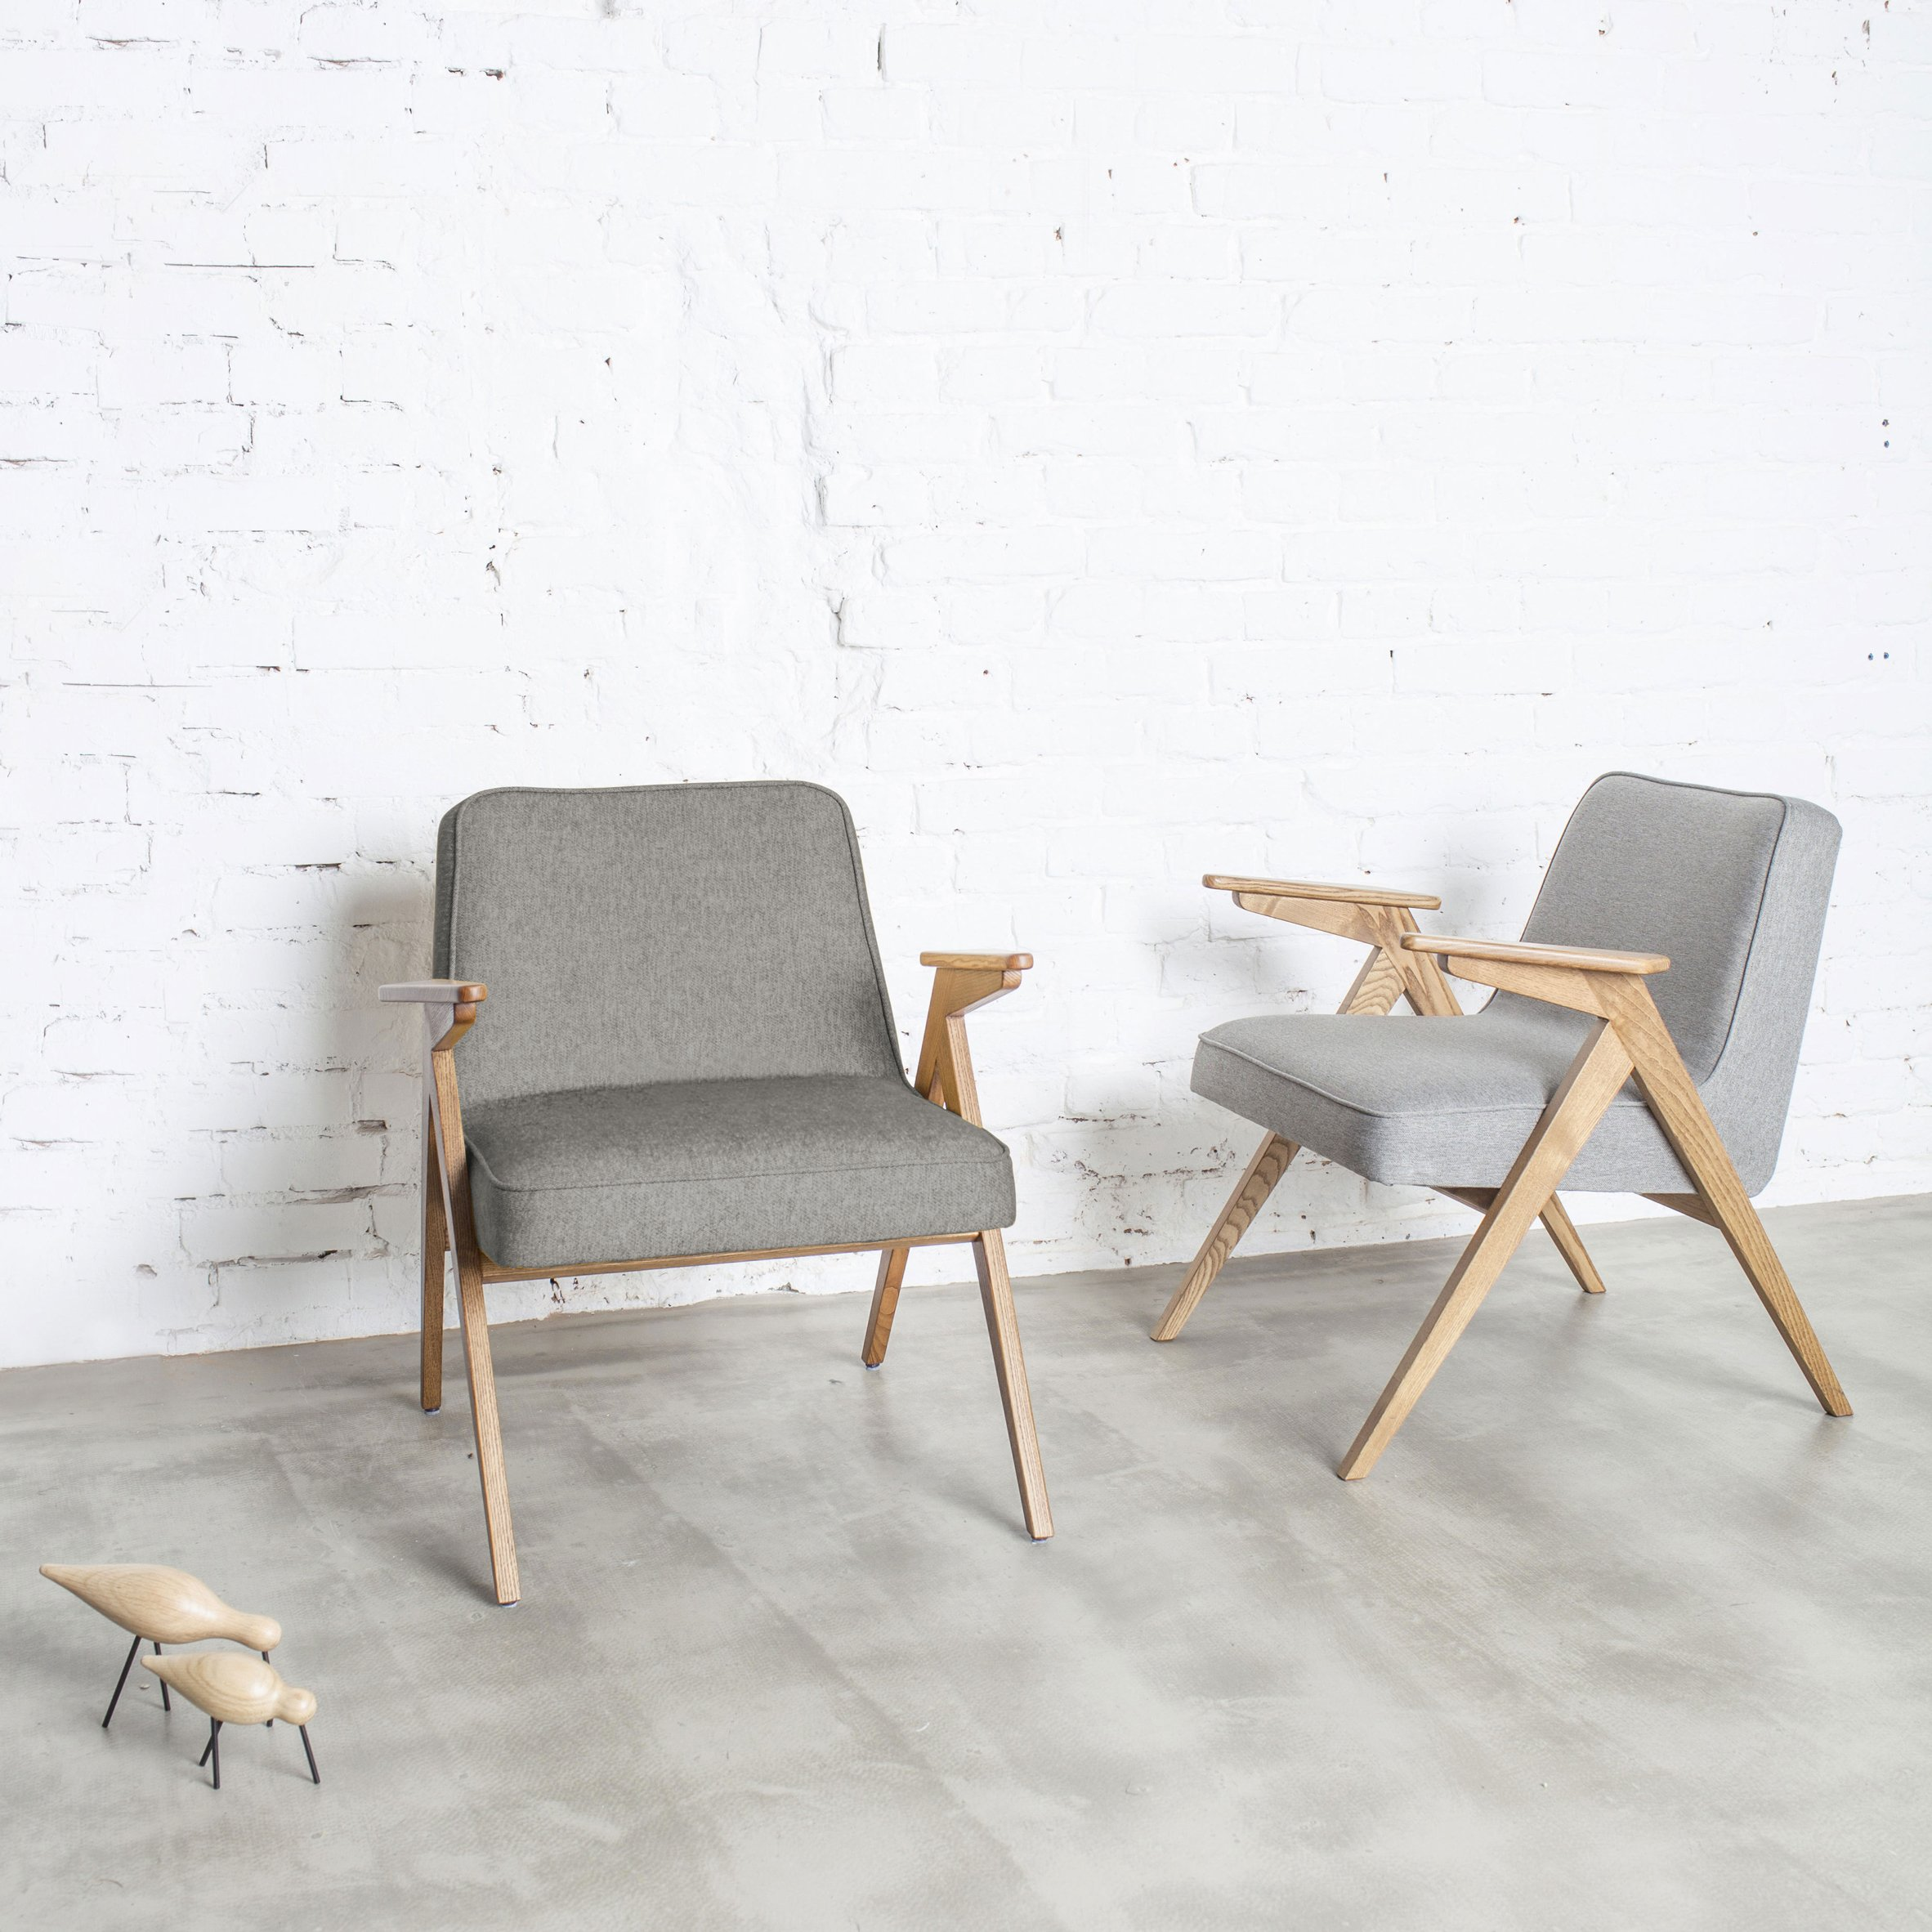 Dezeen jobs architecture and design recruitment for Furniture jobs london